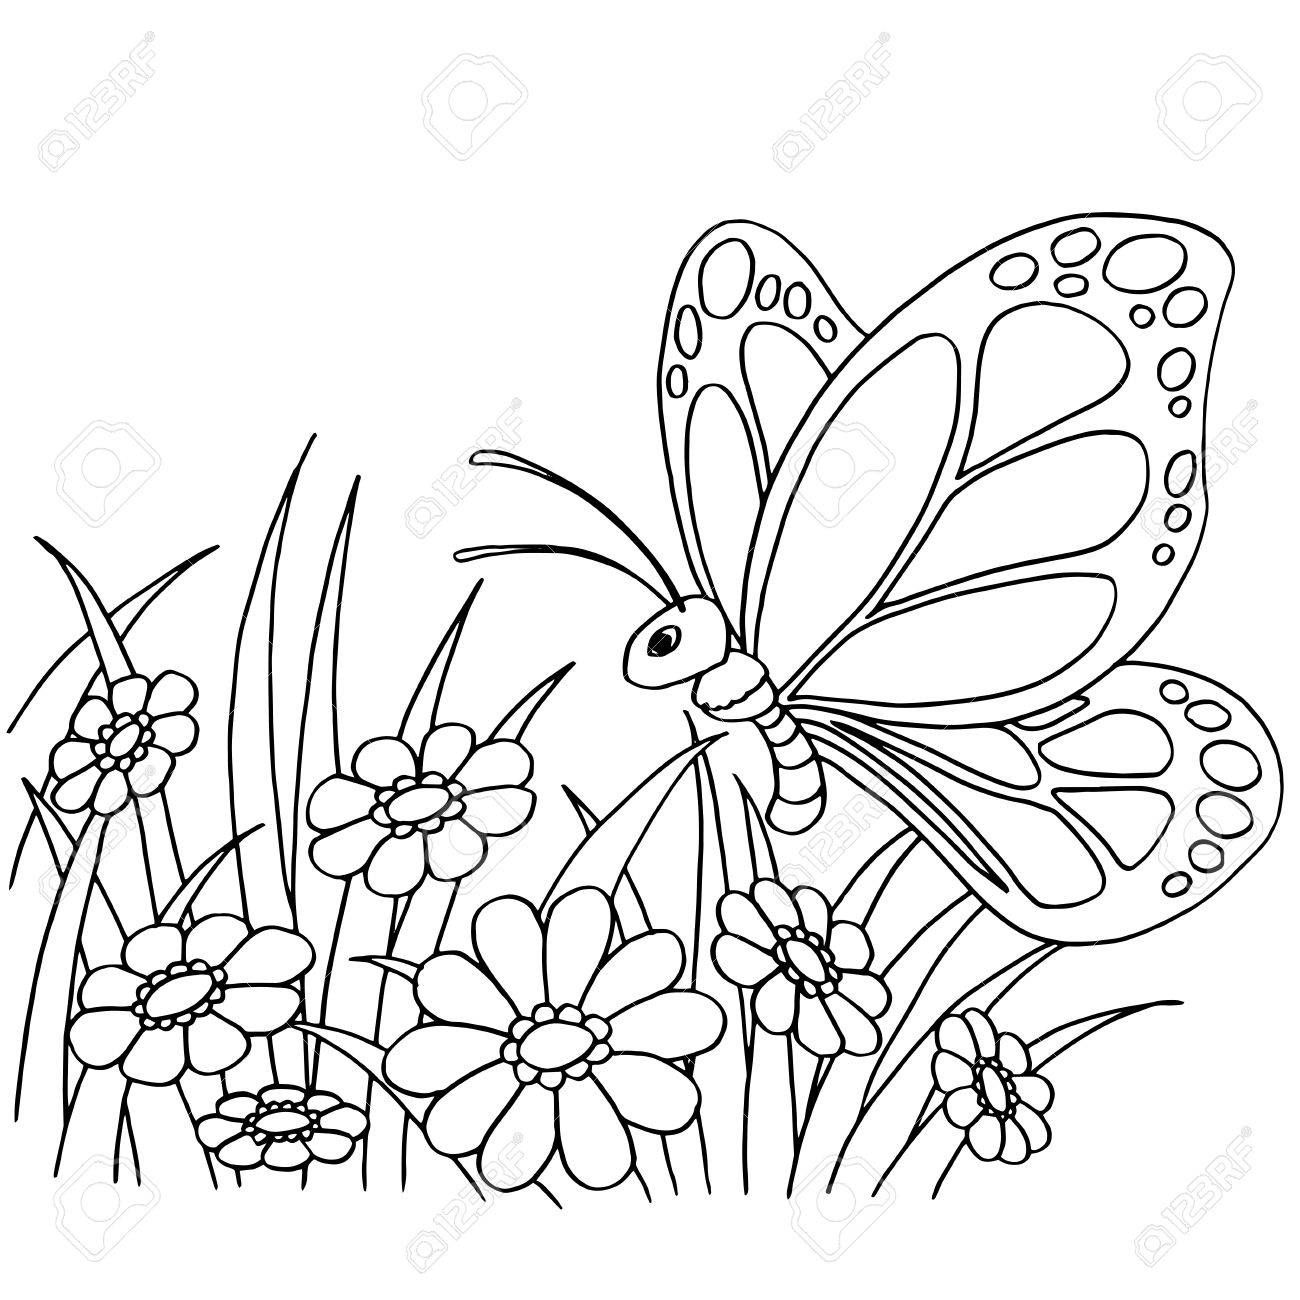 Butterfly And Flower Cartoon Coloring Page Vector Illustration Illustration A Butterfly Coloring Page Flower Coloring Pages Printable Flower Coloring Pages [ 1300 x 1300 Pixel ]